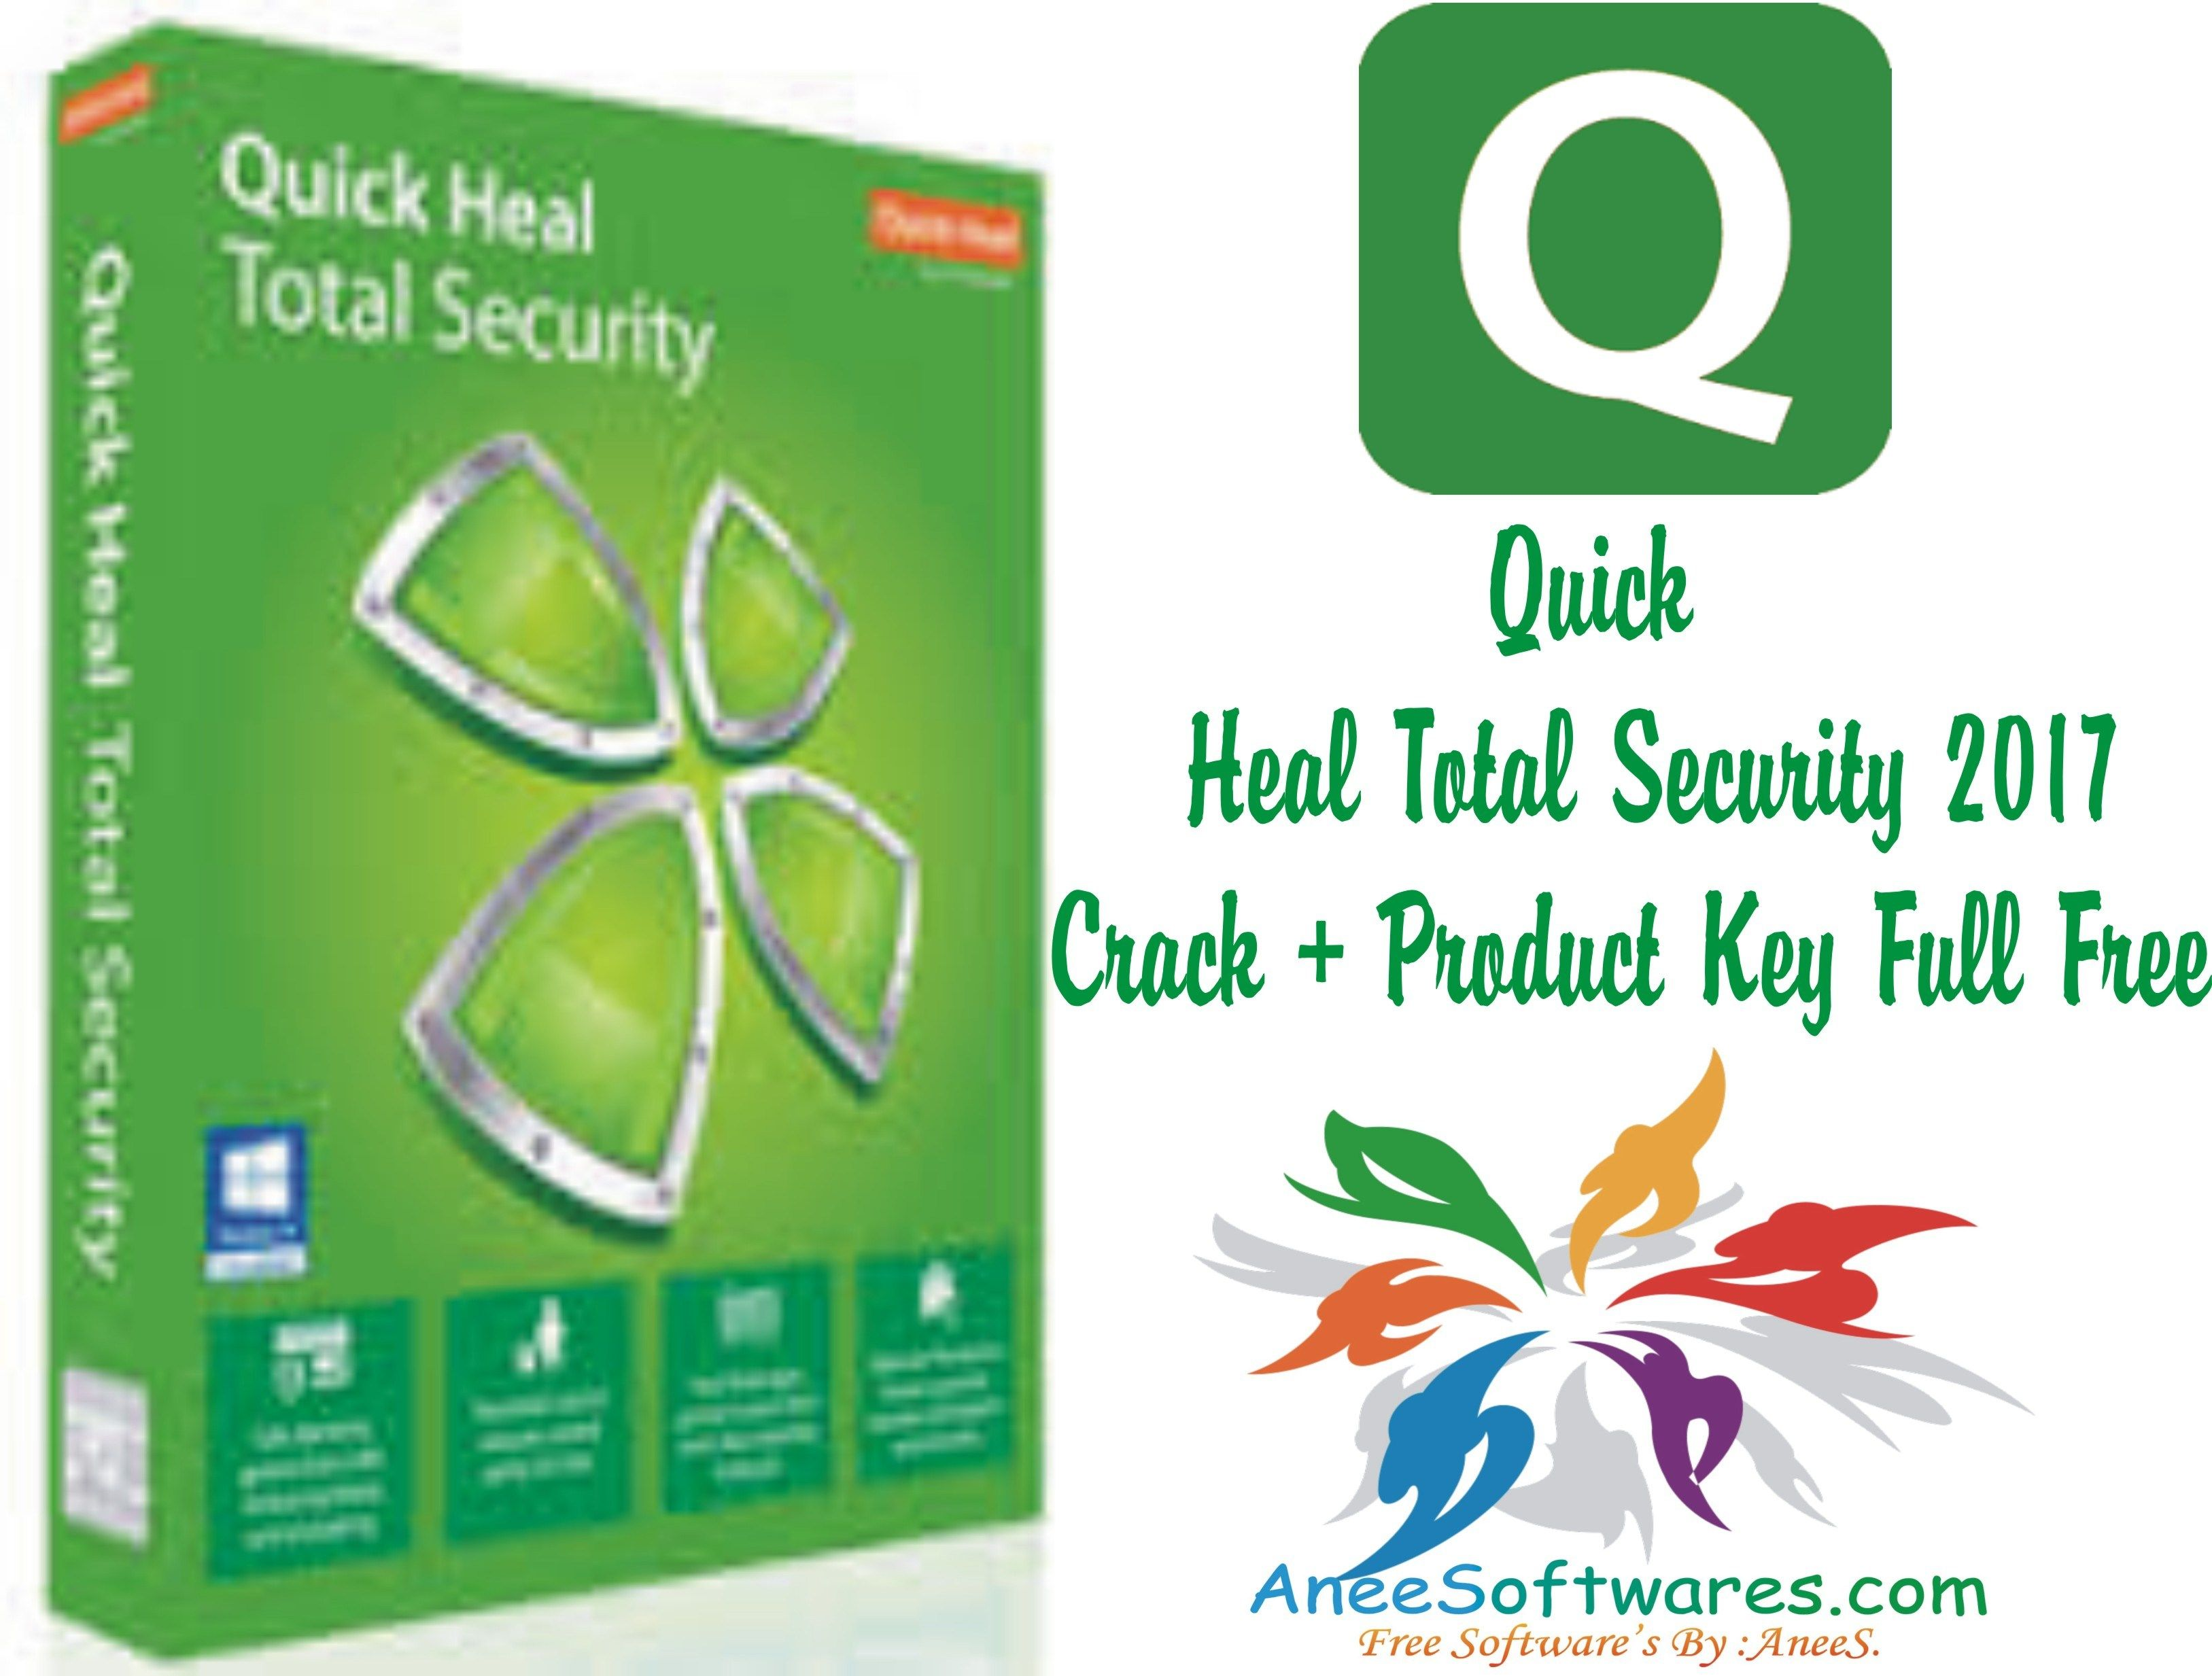 quick heal total security for android product key free download